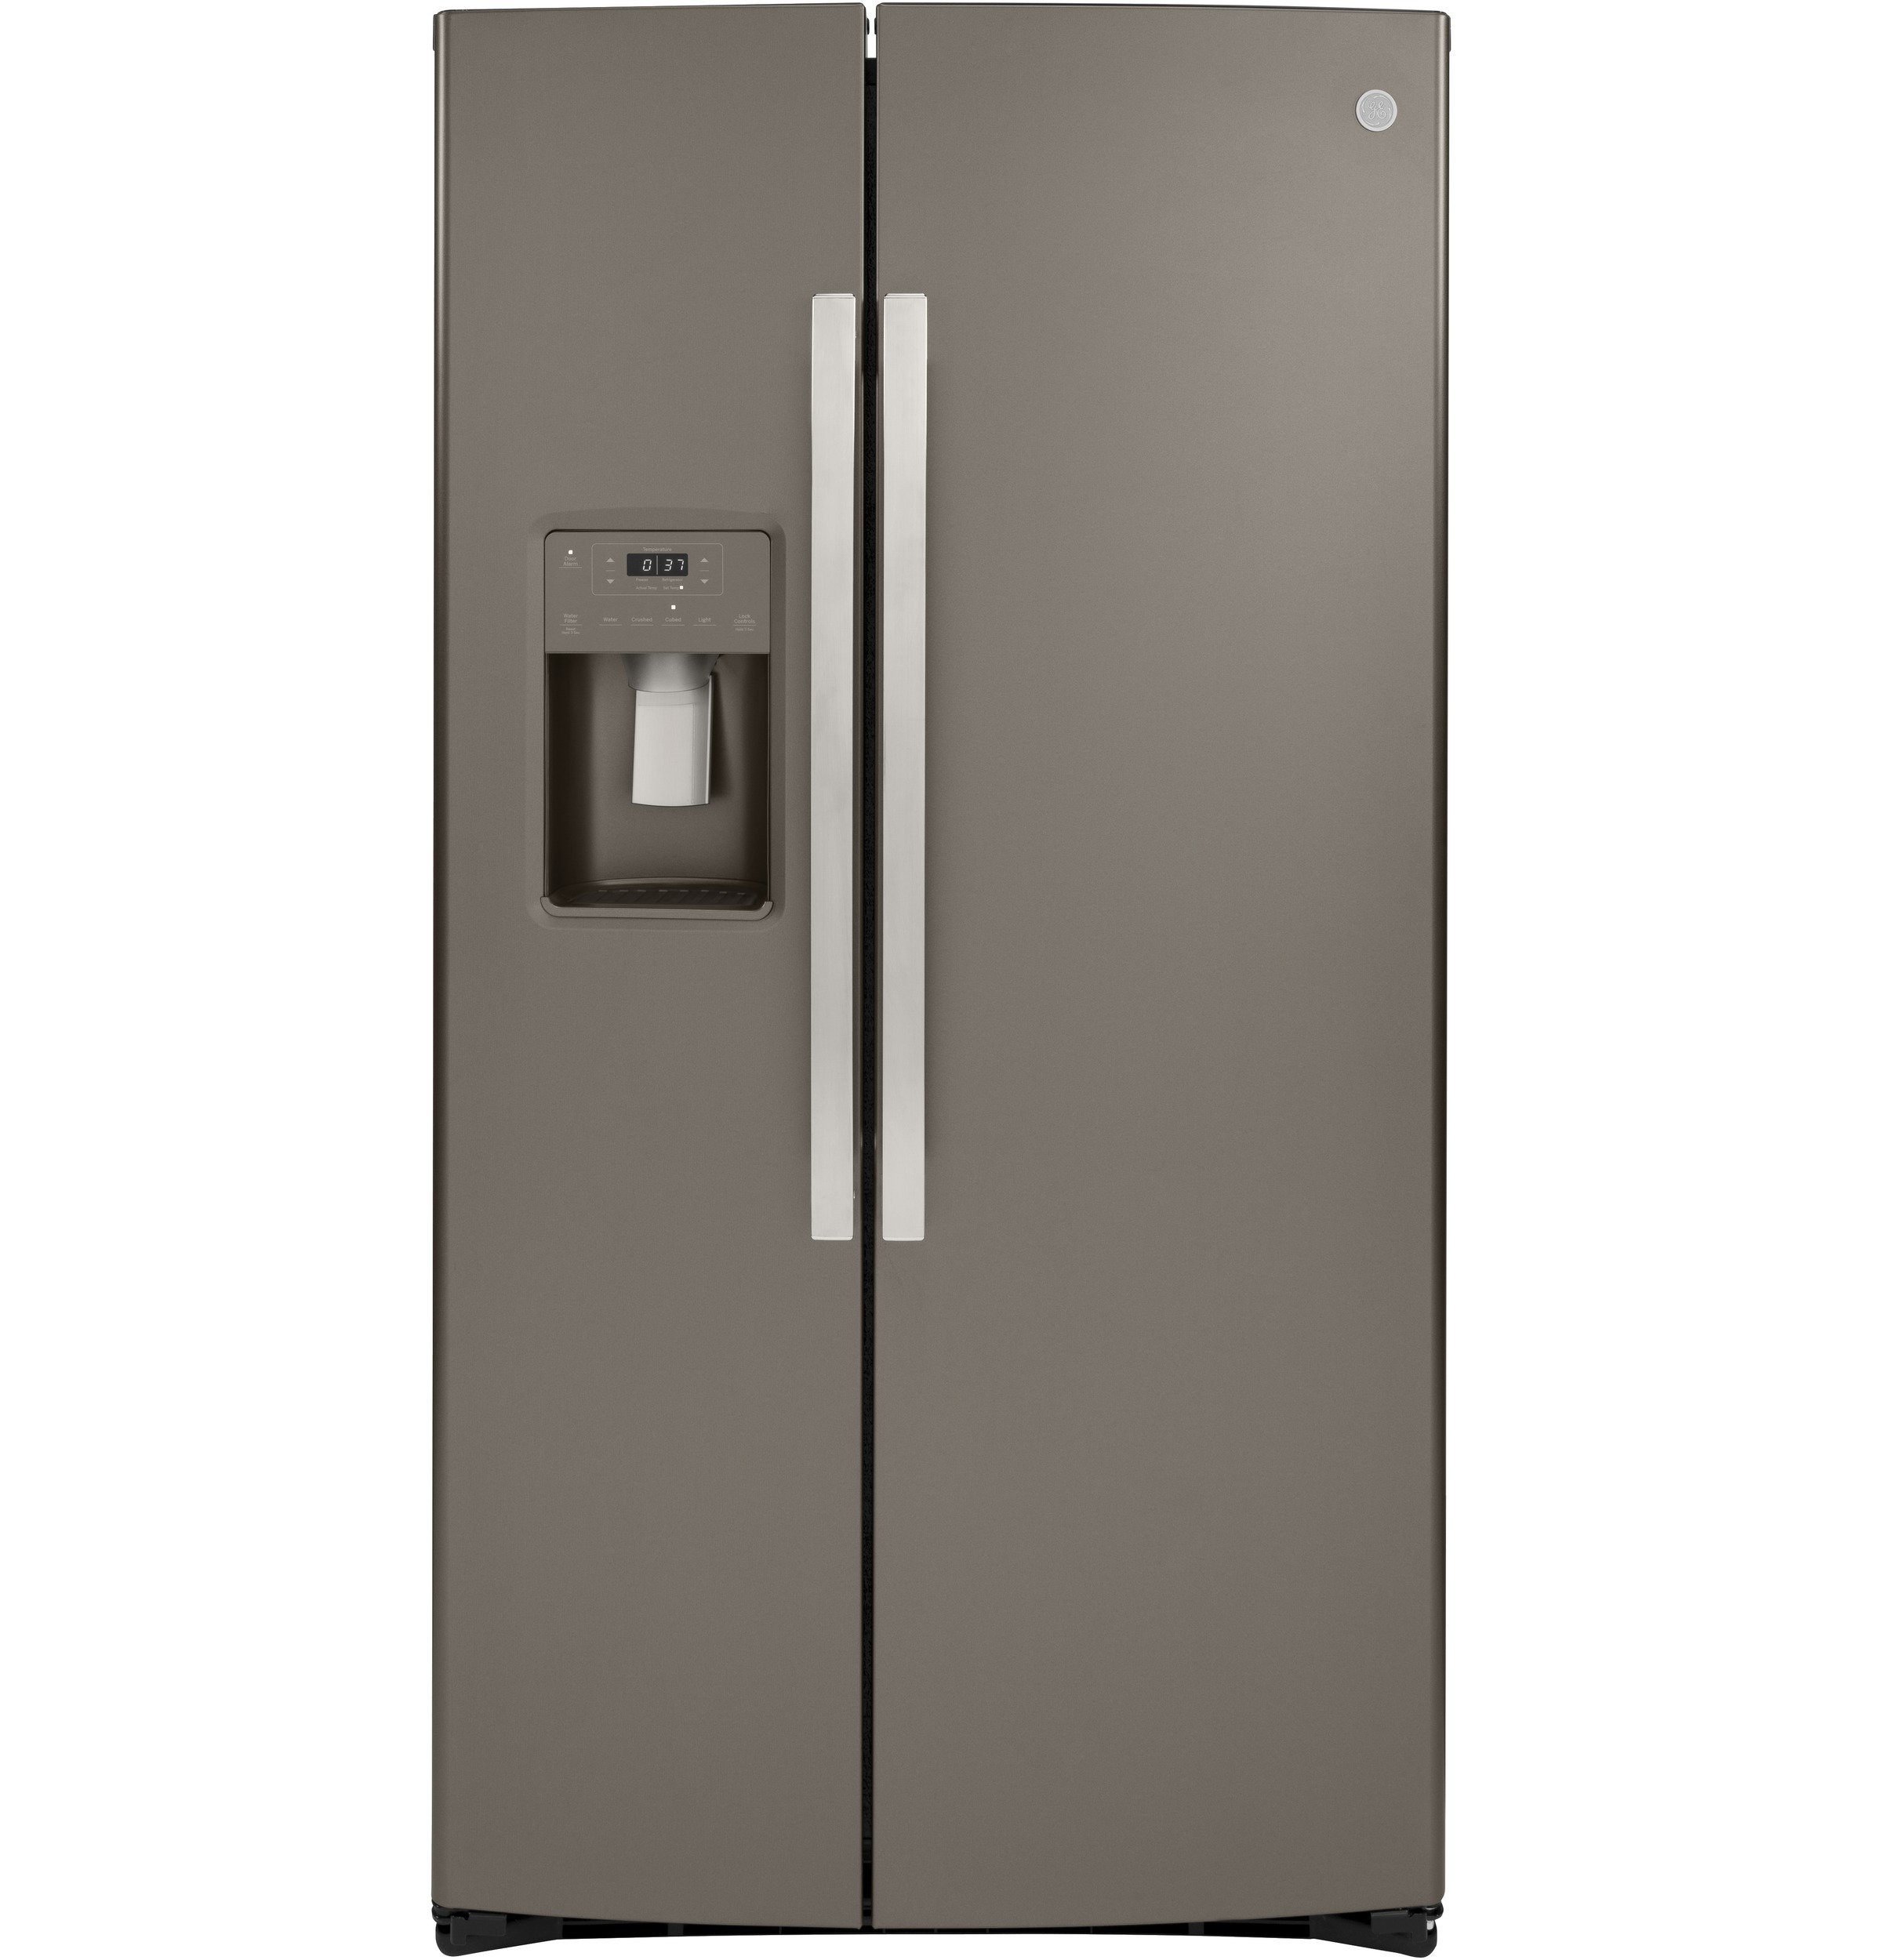 Model: GZS22IMNES | GE® 21.8 Cu. Ft. Counter-Depth Side-By-Side Refrigerator